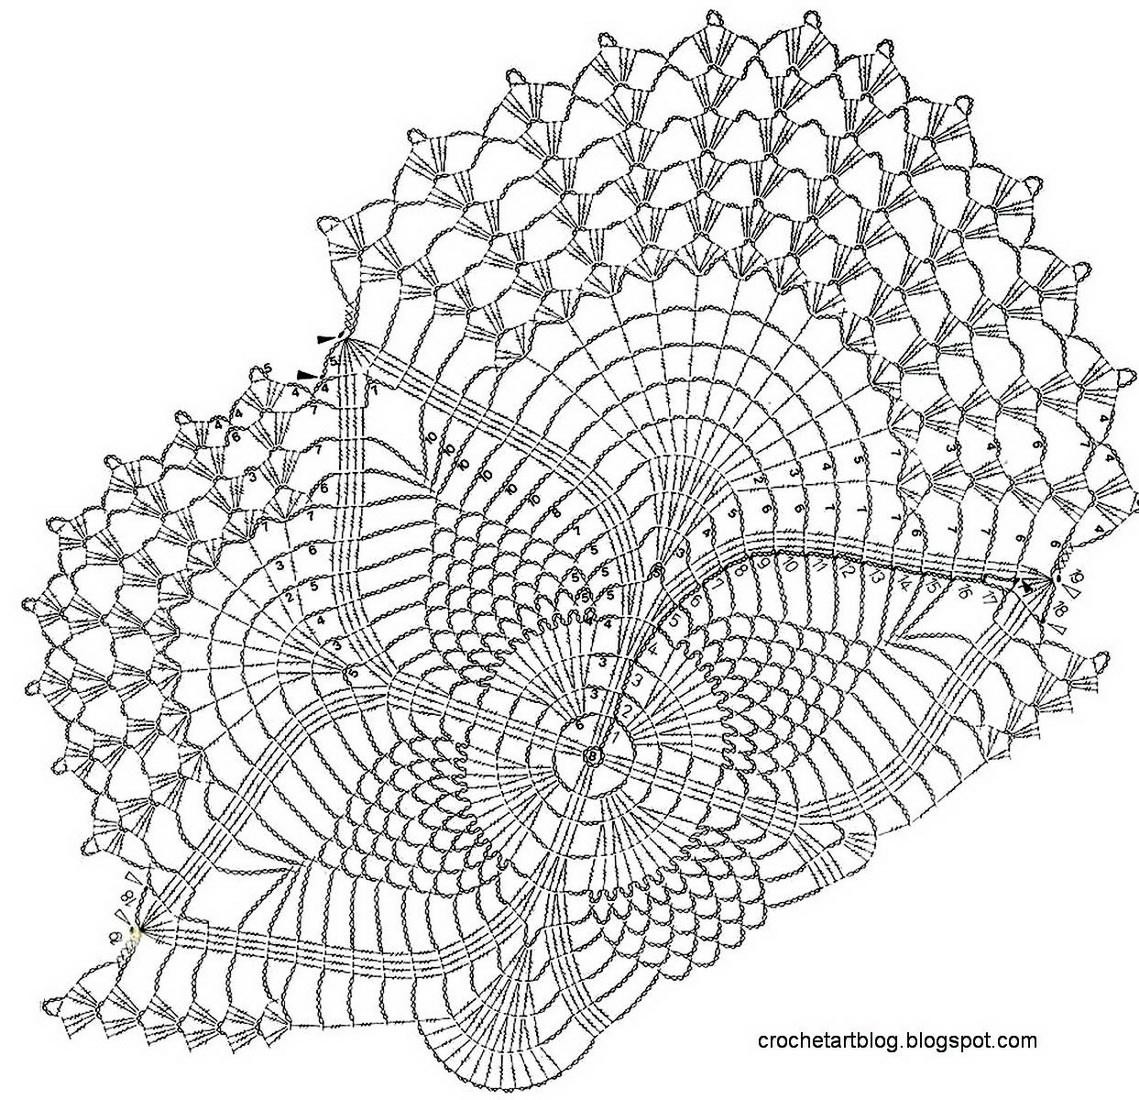 Free Doily Patterns Inspirational Crochet with Pattern Crochet and Knit Of Adorable 43 Pictures Free Doily Patterns